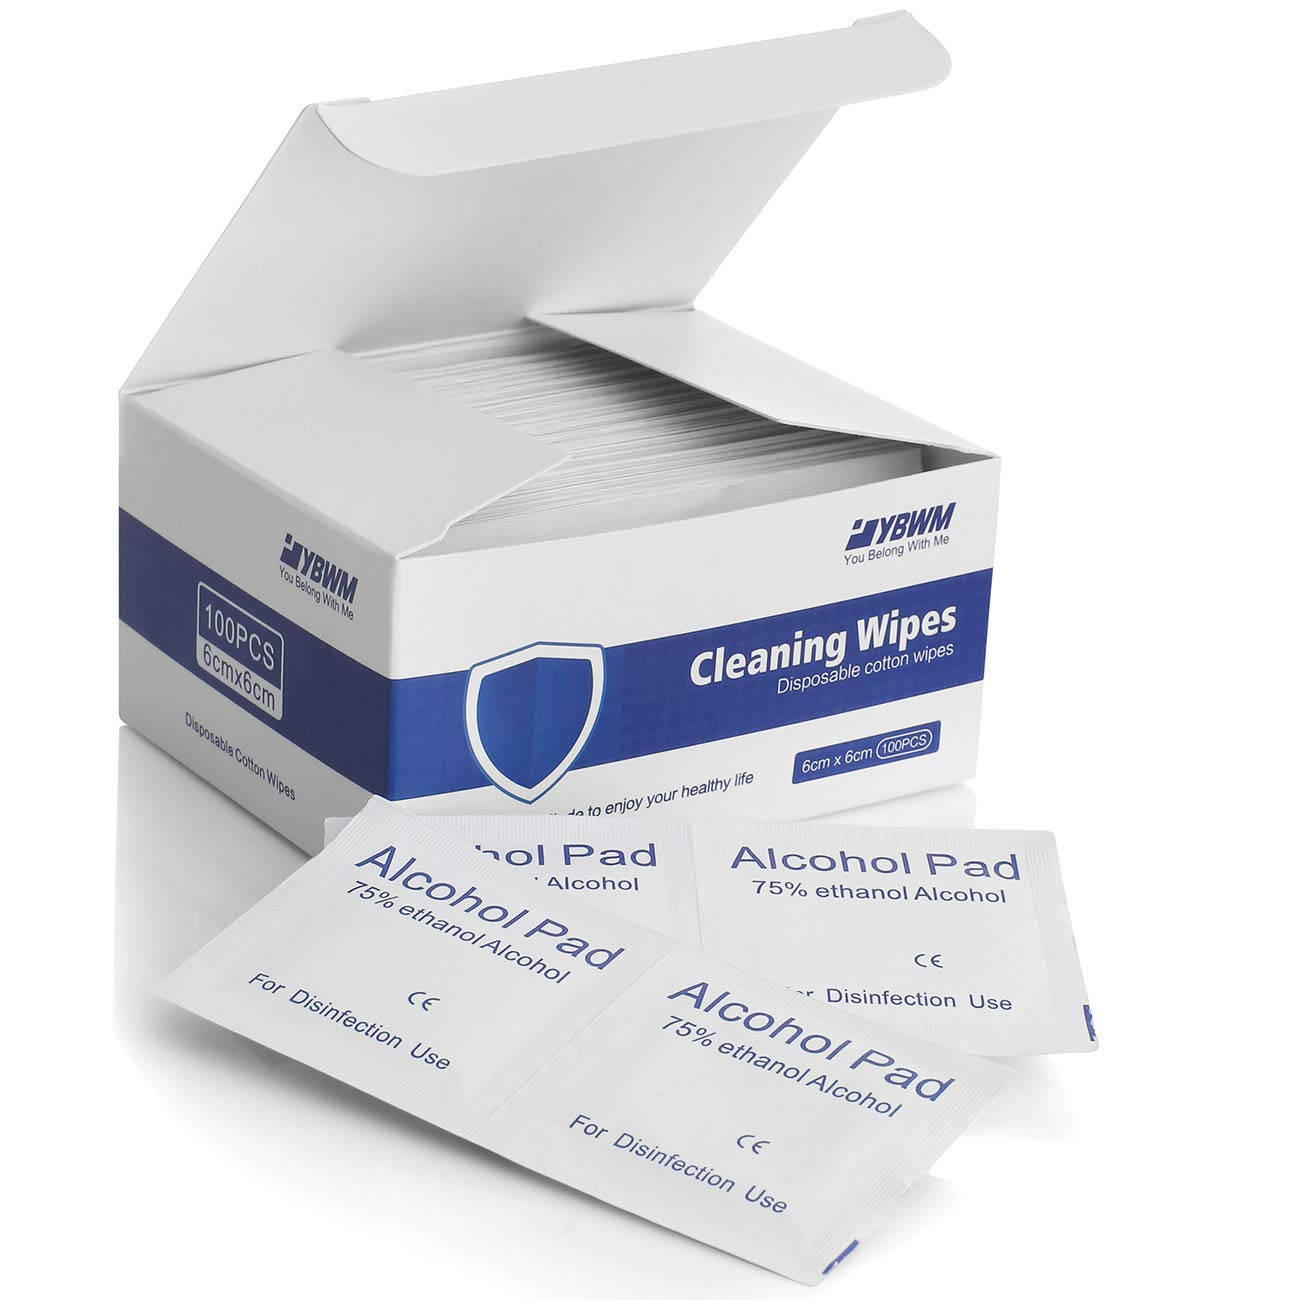 YBWM Disposable Individually Wrapped 75% A~lcohol C~Leaning Wipes for House and Office Public Health 2.4x2.4inch 100pcs